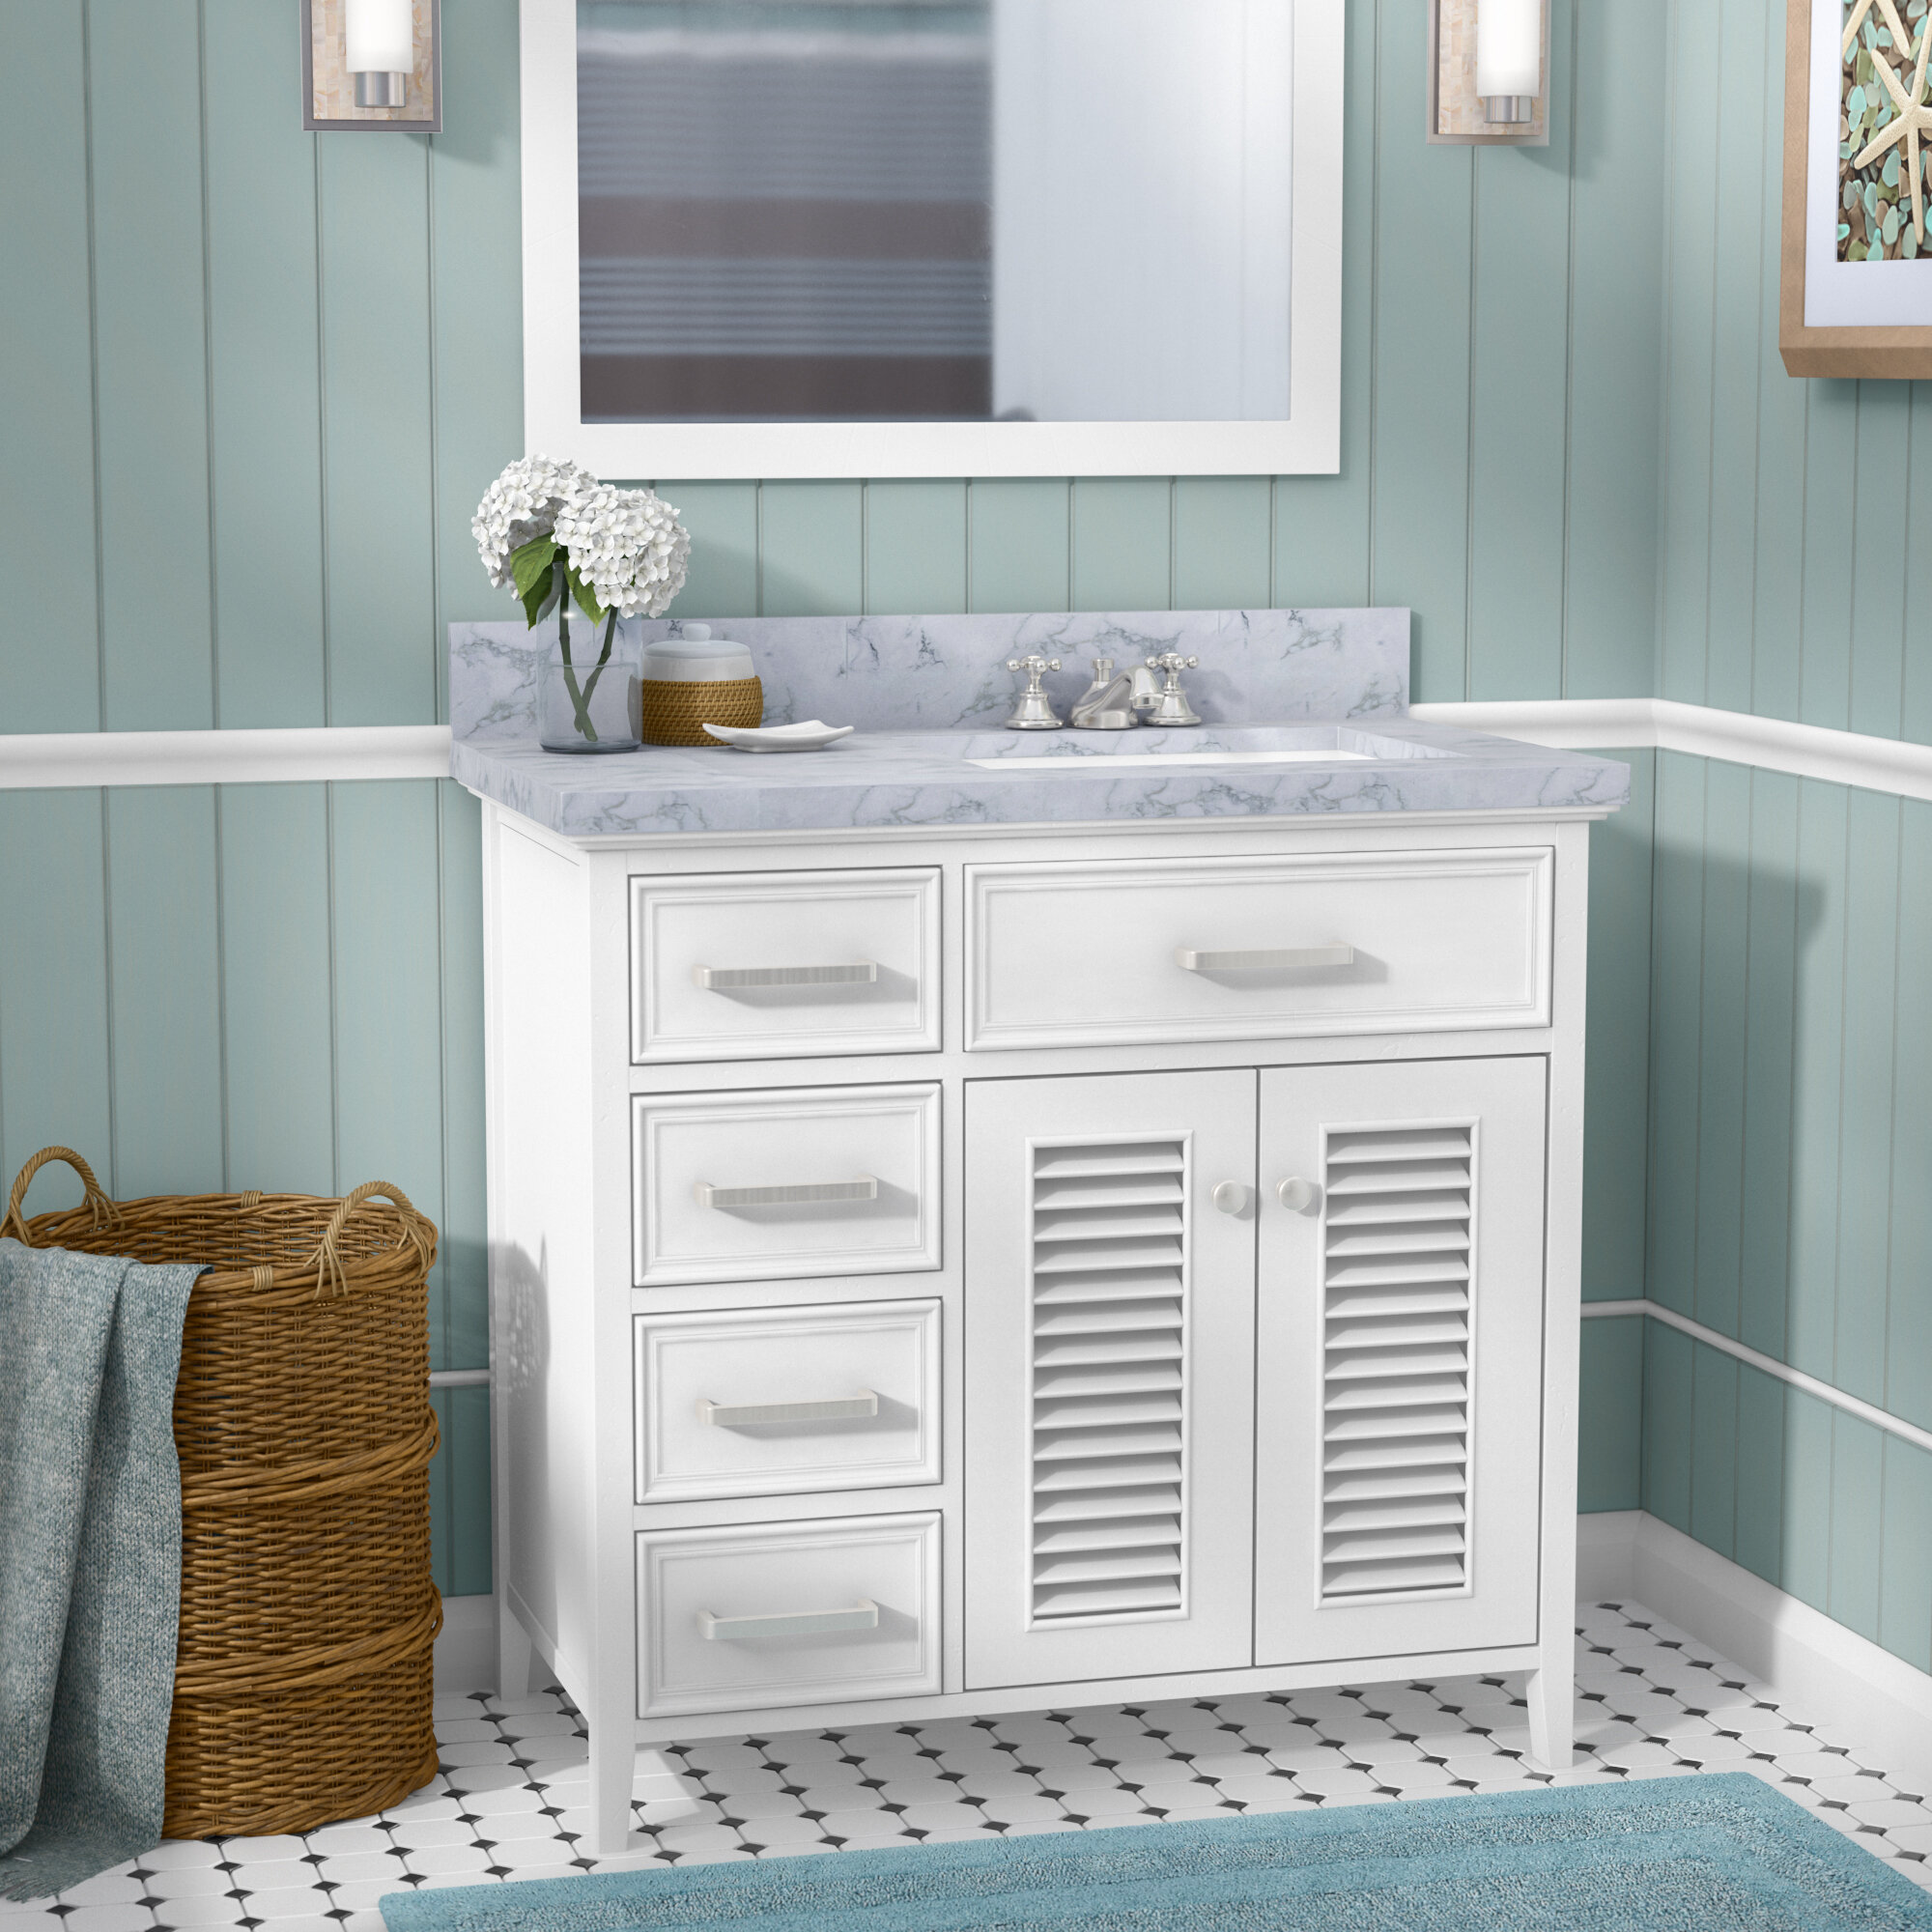 highland dunes hamil right offset 37 single bathroom vanity with rh wayfair com right offset bathroom vanity home depot right offset bathroom vanity